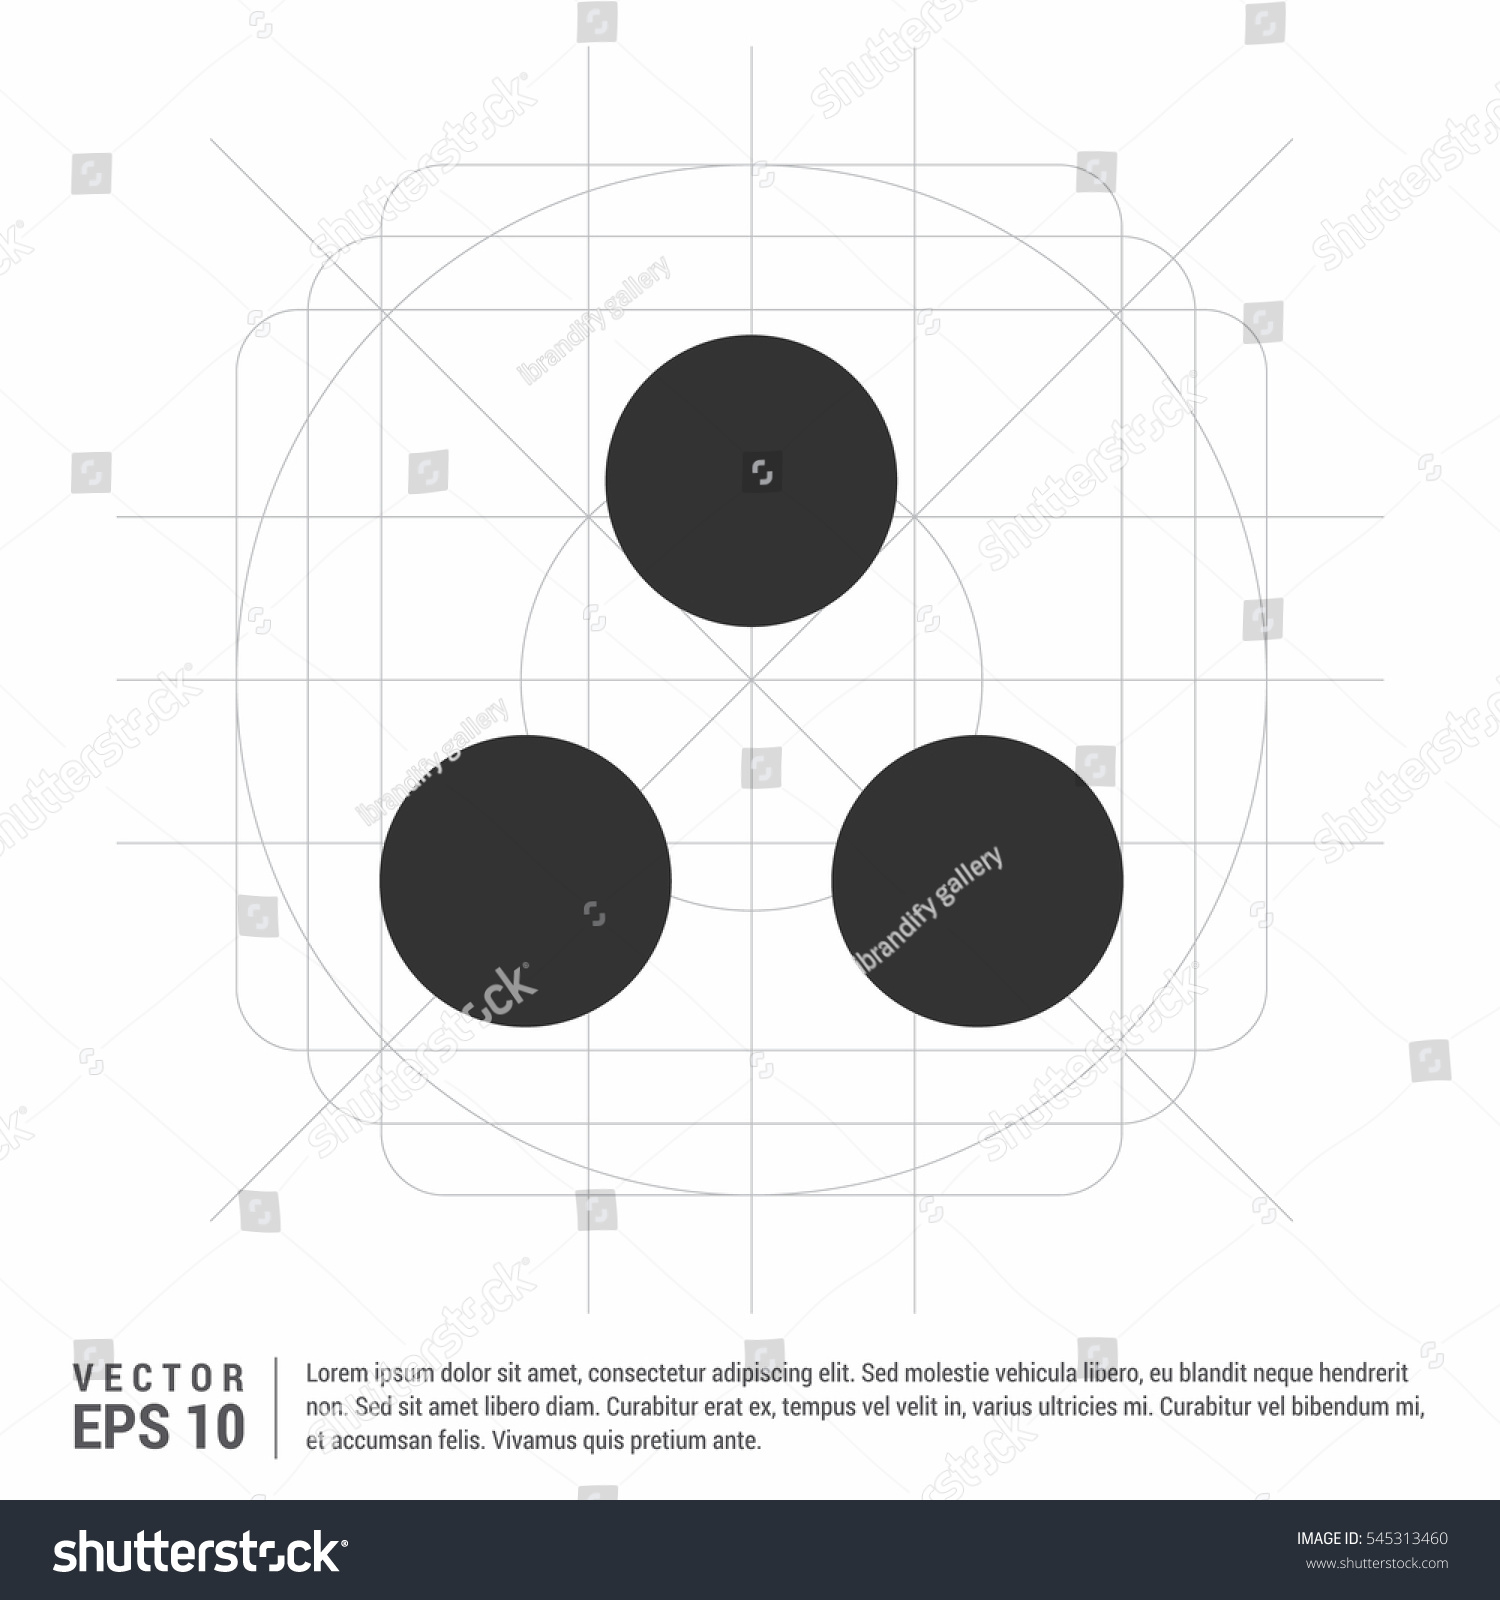 Chat sign icon three dots symbol stock vector 545313460 shutterstock chat sign icon three dots symbol vector illustration for web site mobile application biocorpaavc